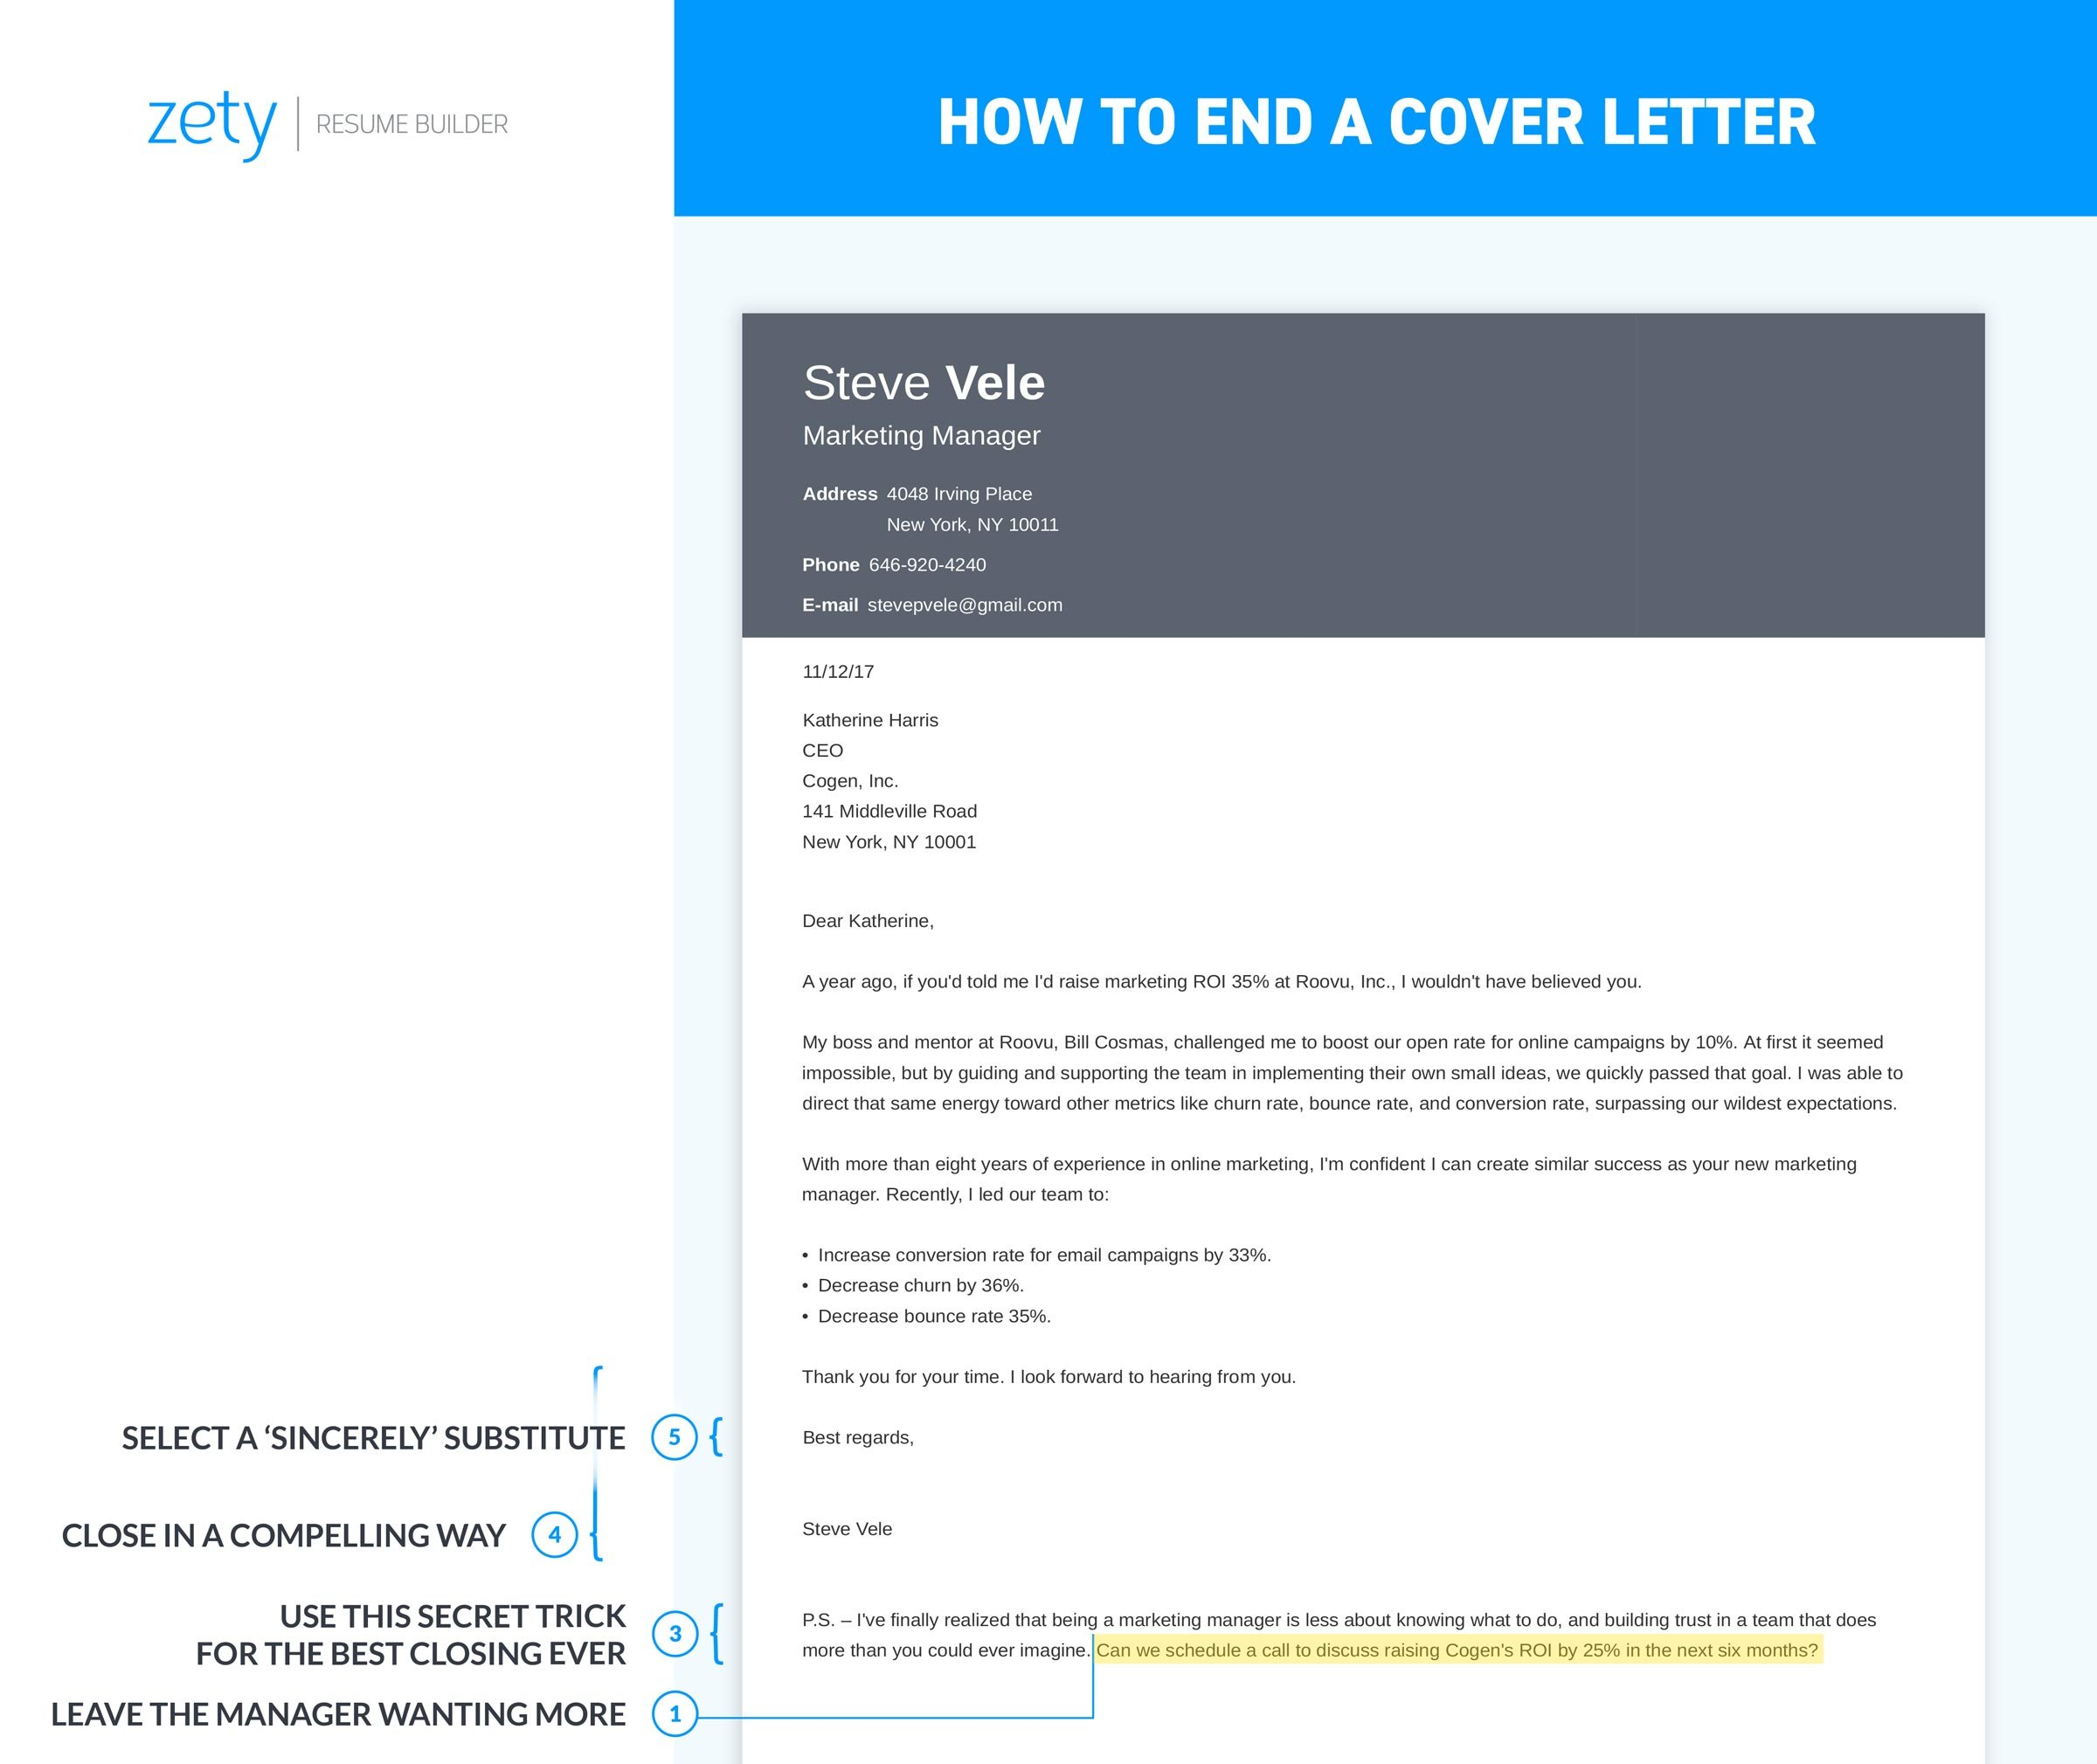 How to End a Cover Letter [20+ Examples of Great Closing Paragraphs]